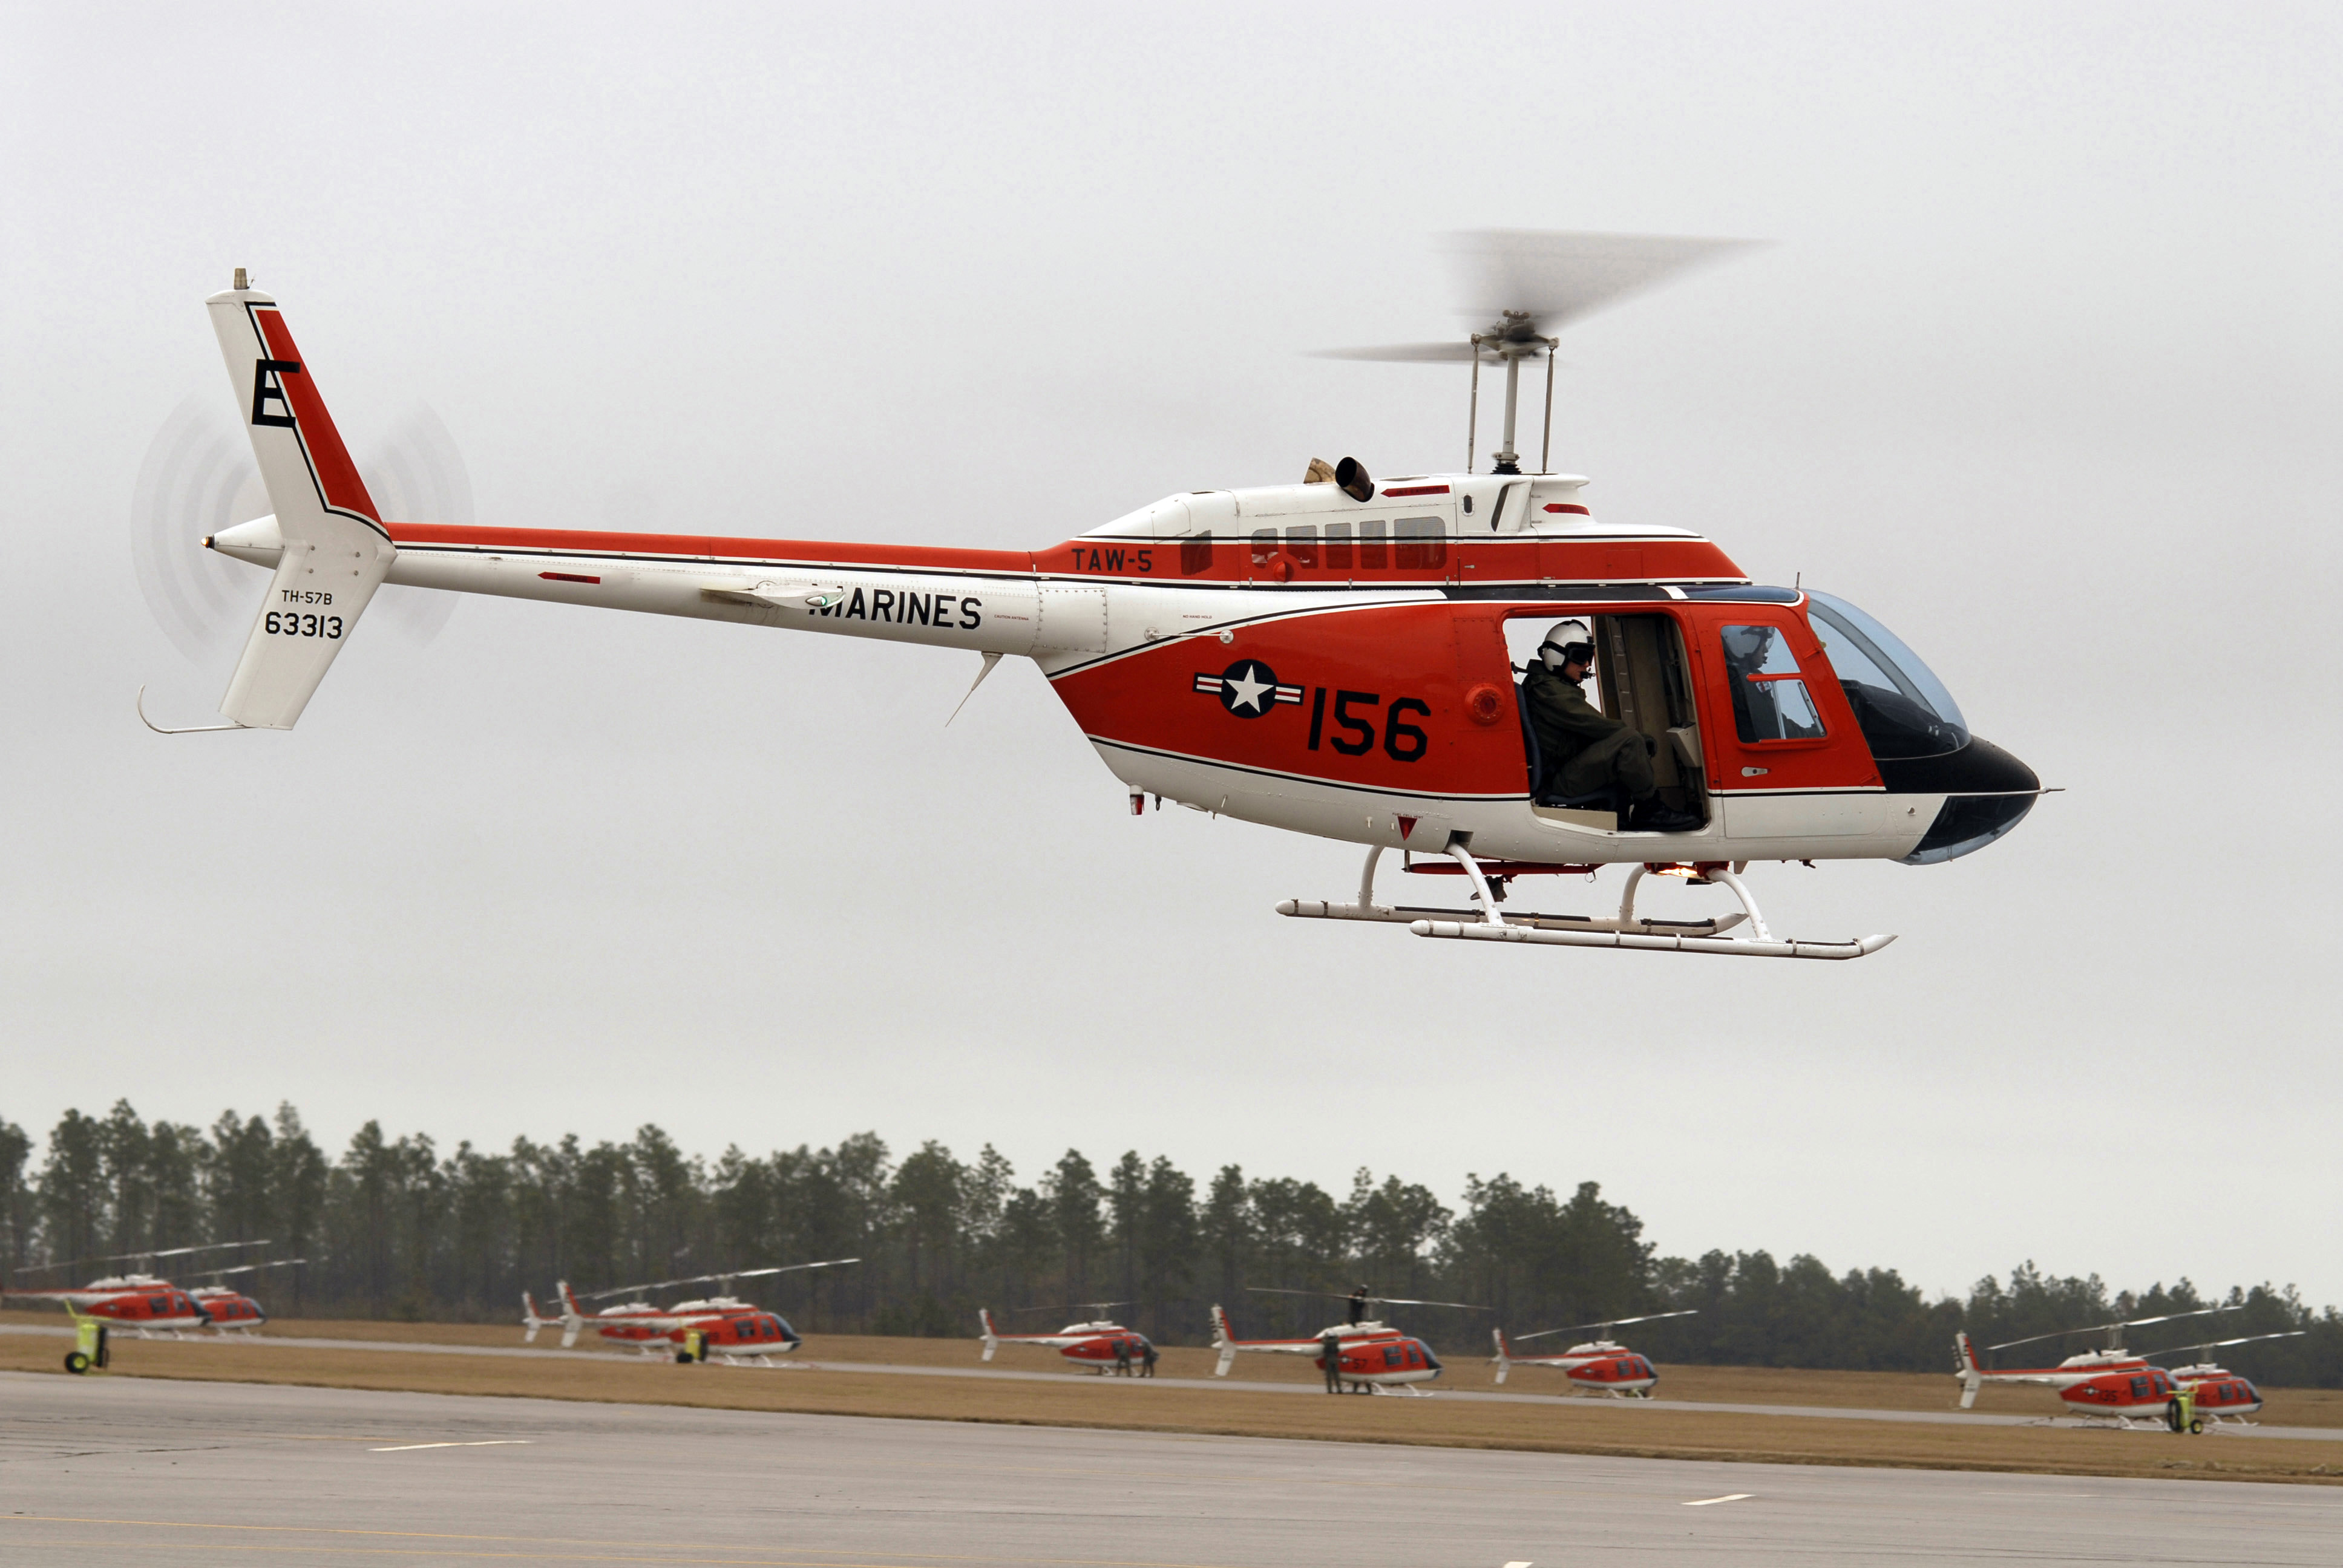 081216-N-2101W-003 MILTON, Fla. (Dec. 16, 2008) A TH-57 Sea Ranger helicopter taxis down the flight line preparing for a routine training flight at Naval Air Station Whiting Field. (U.S. Navy photo by Alan Warner/Released)